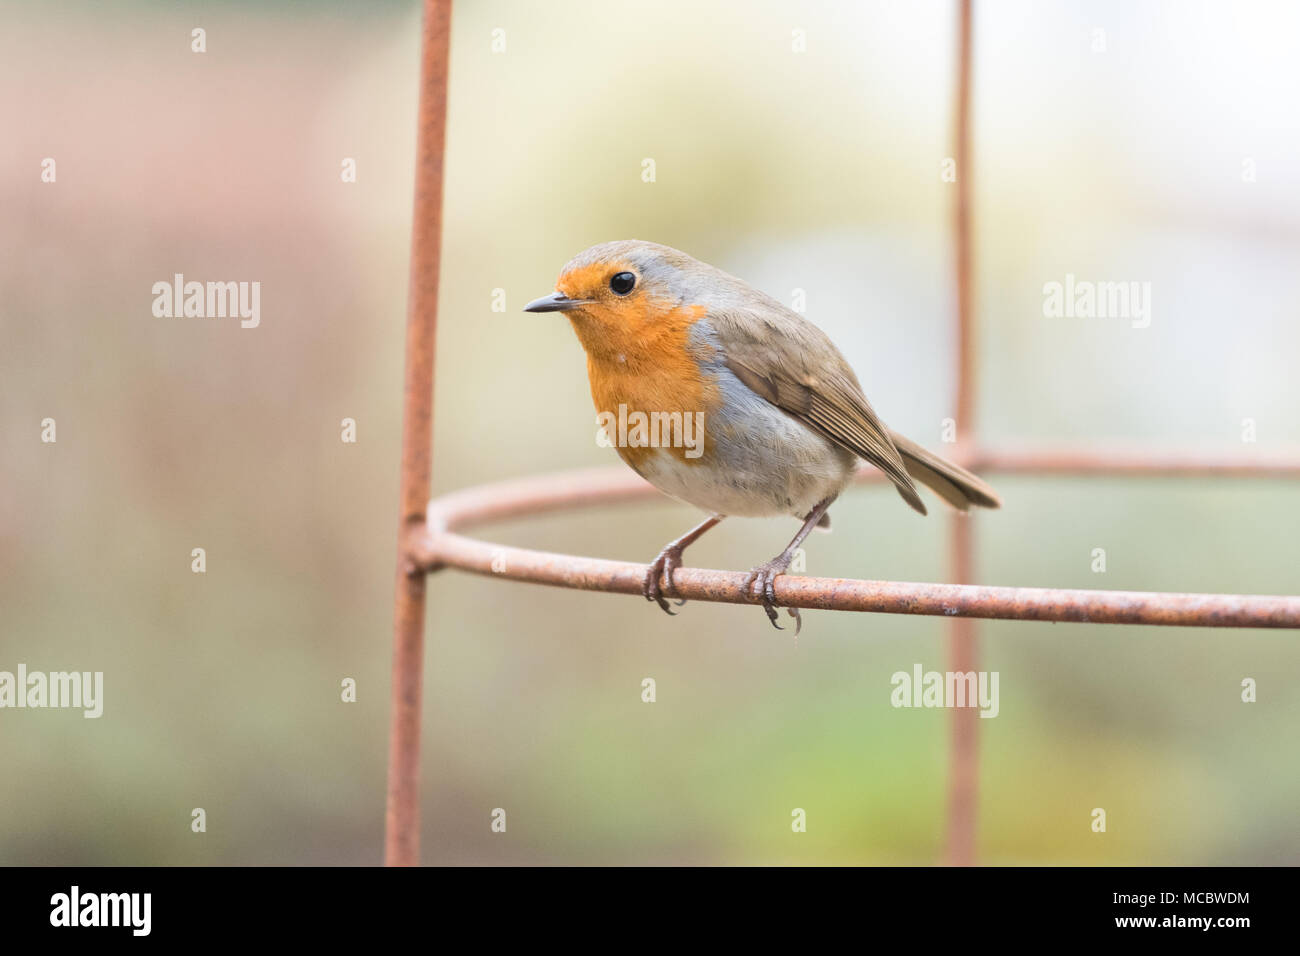 Robin Erithacus rubecula  perched on metal plant support in UK garden Stock Photo